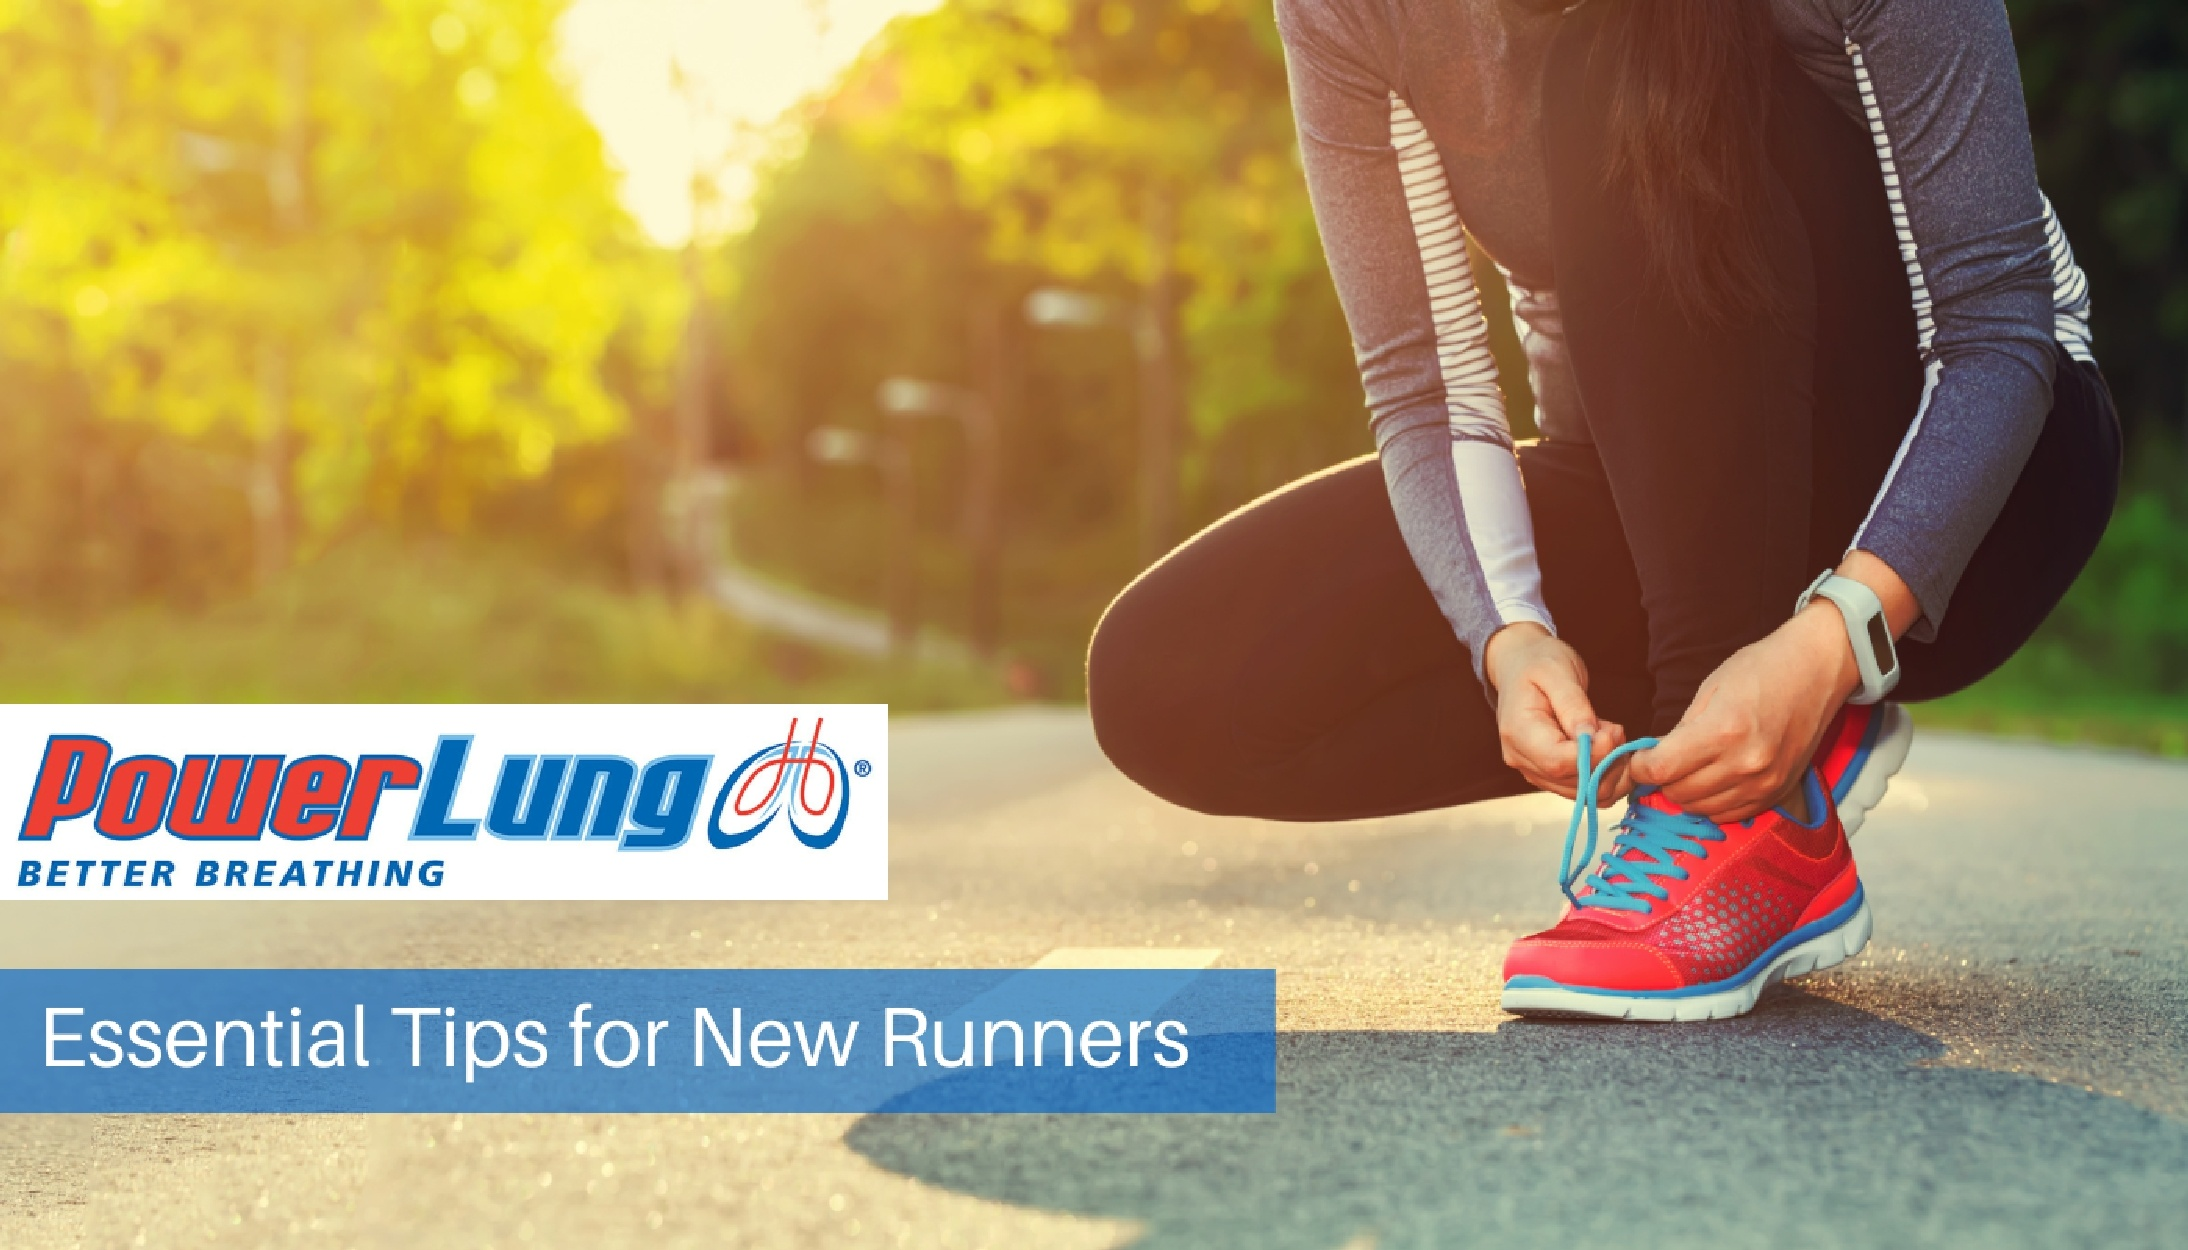 PowerLung - Essential Tips for New Runners.jpg